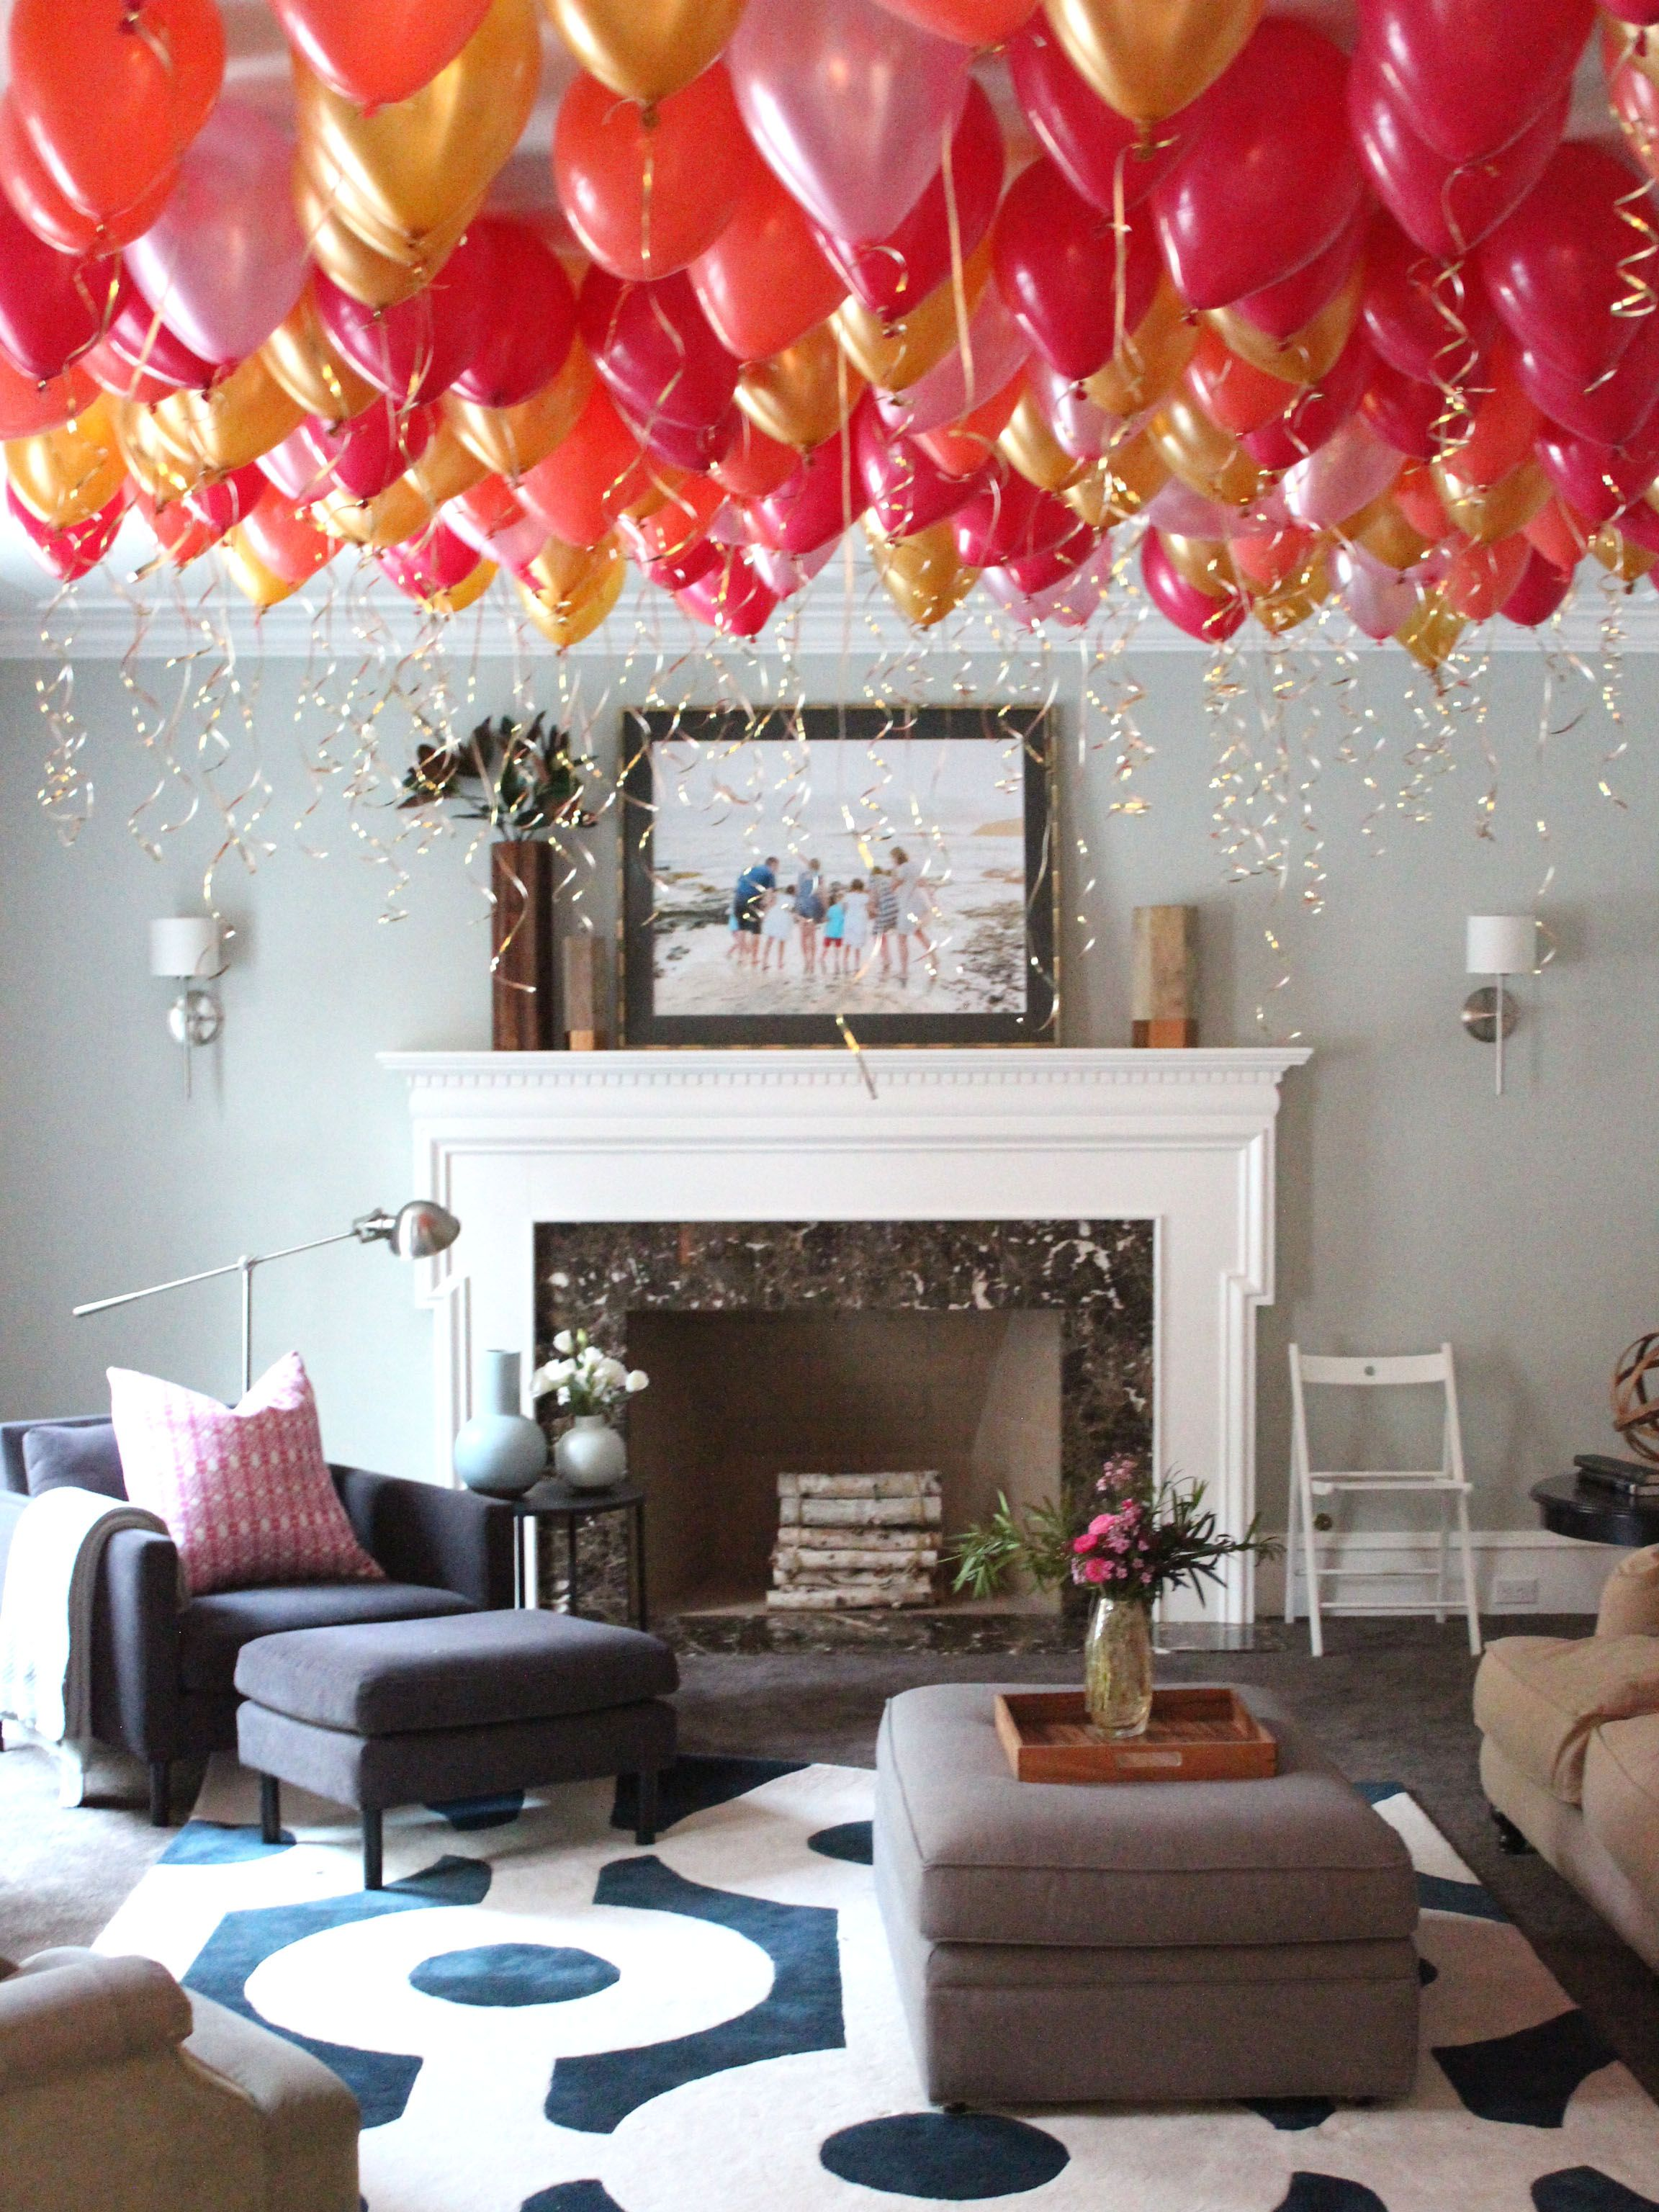 Balloon Party Room Birthday Room Decorations Decor Small Living Room